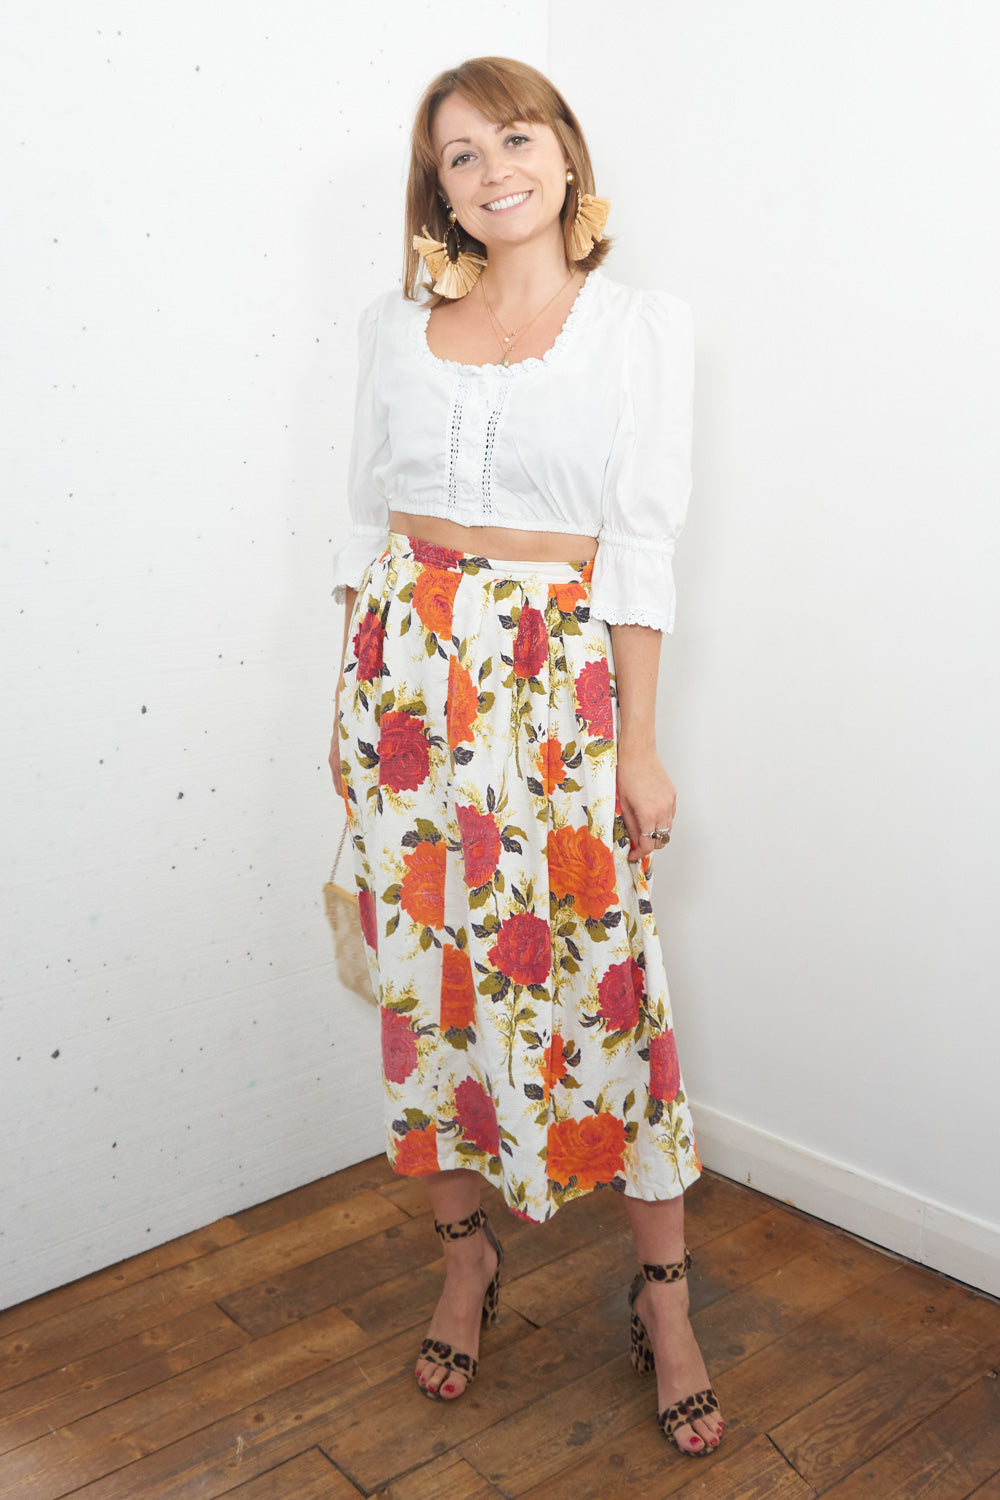 Lolita - Vintage Floral Maxi Skirt in White, Pink and Orange - Staying Alive Vintage